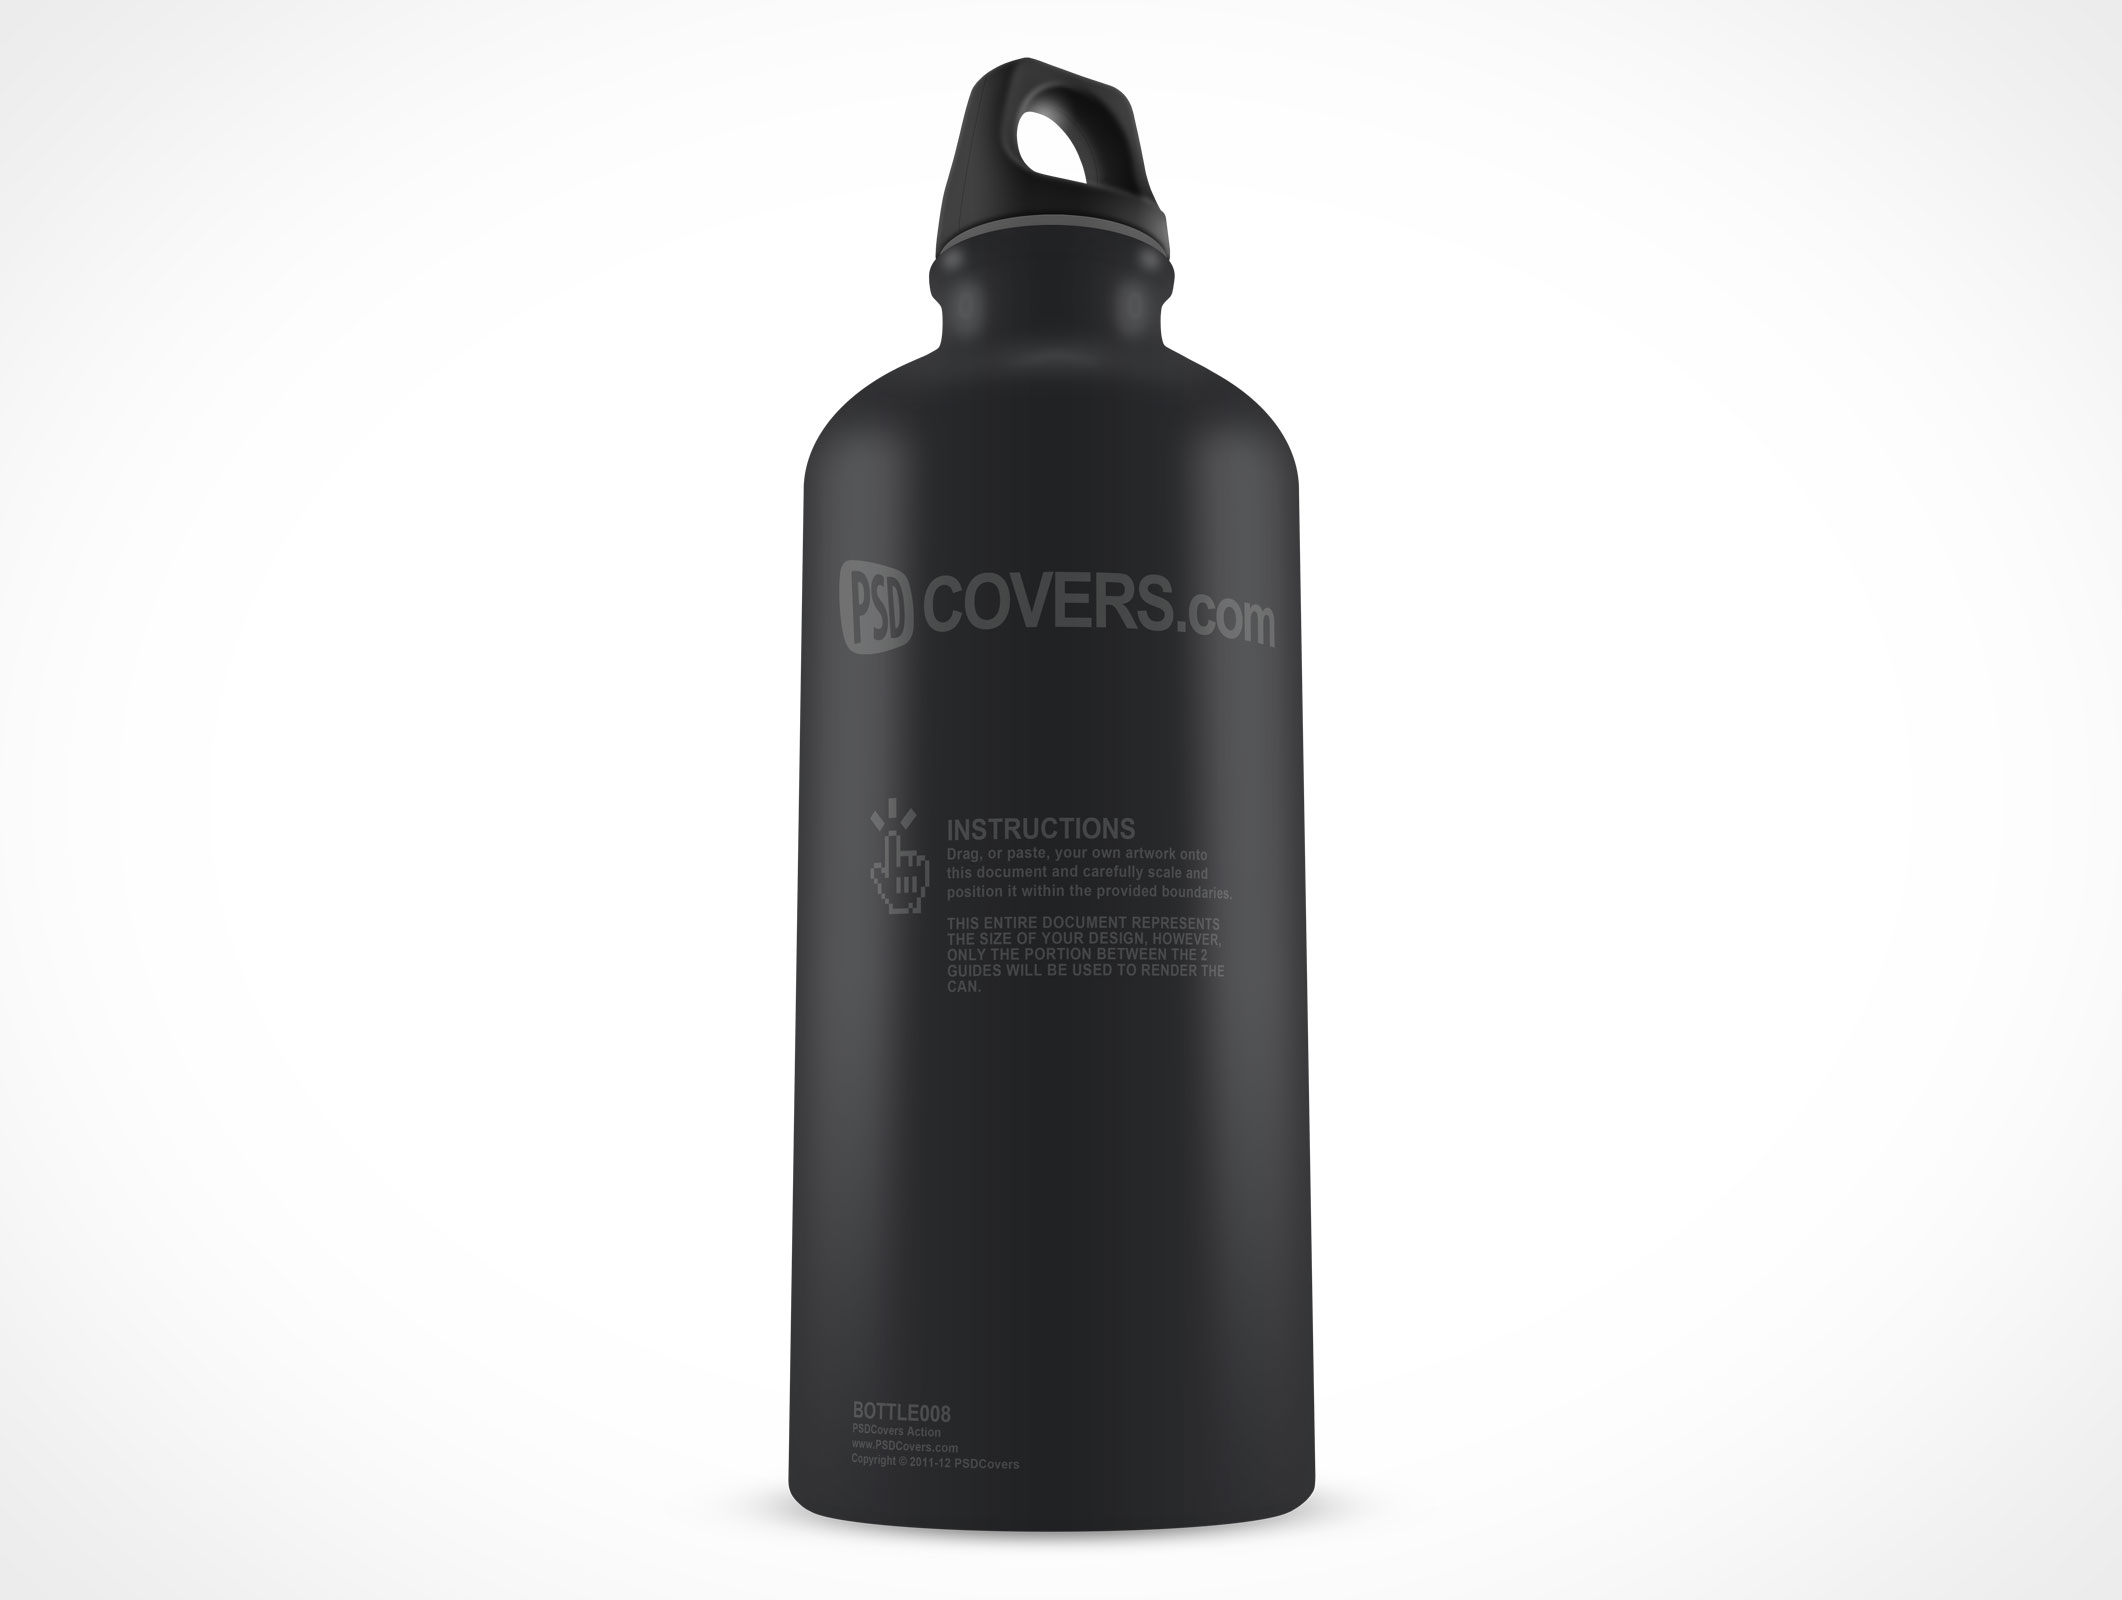 Bottle Archives • PSDCovers